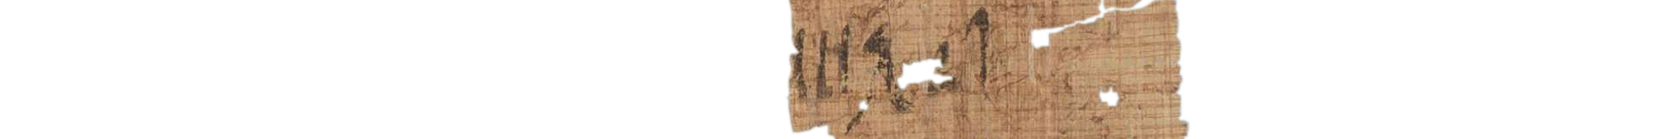 the Turin king list 4.10 (photo of the hieratic text)